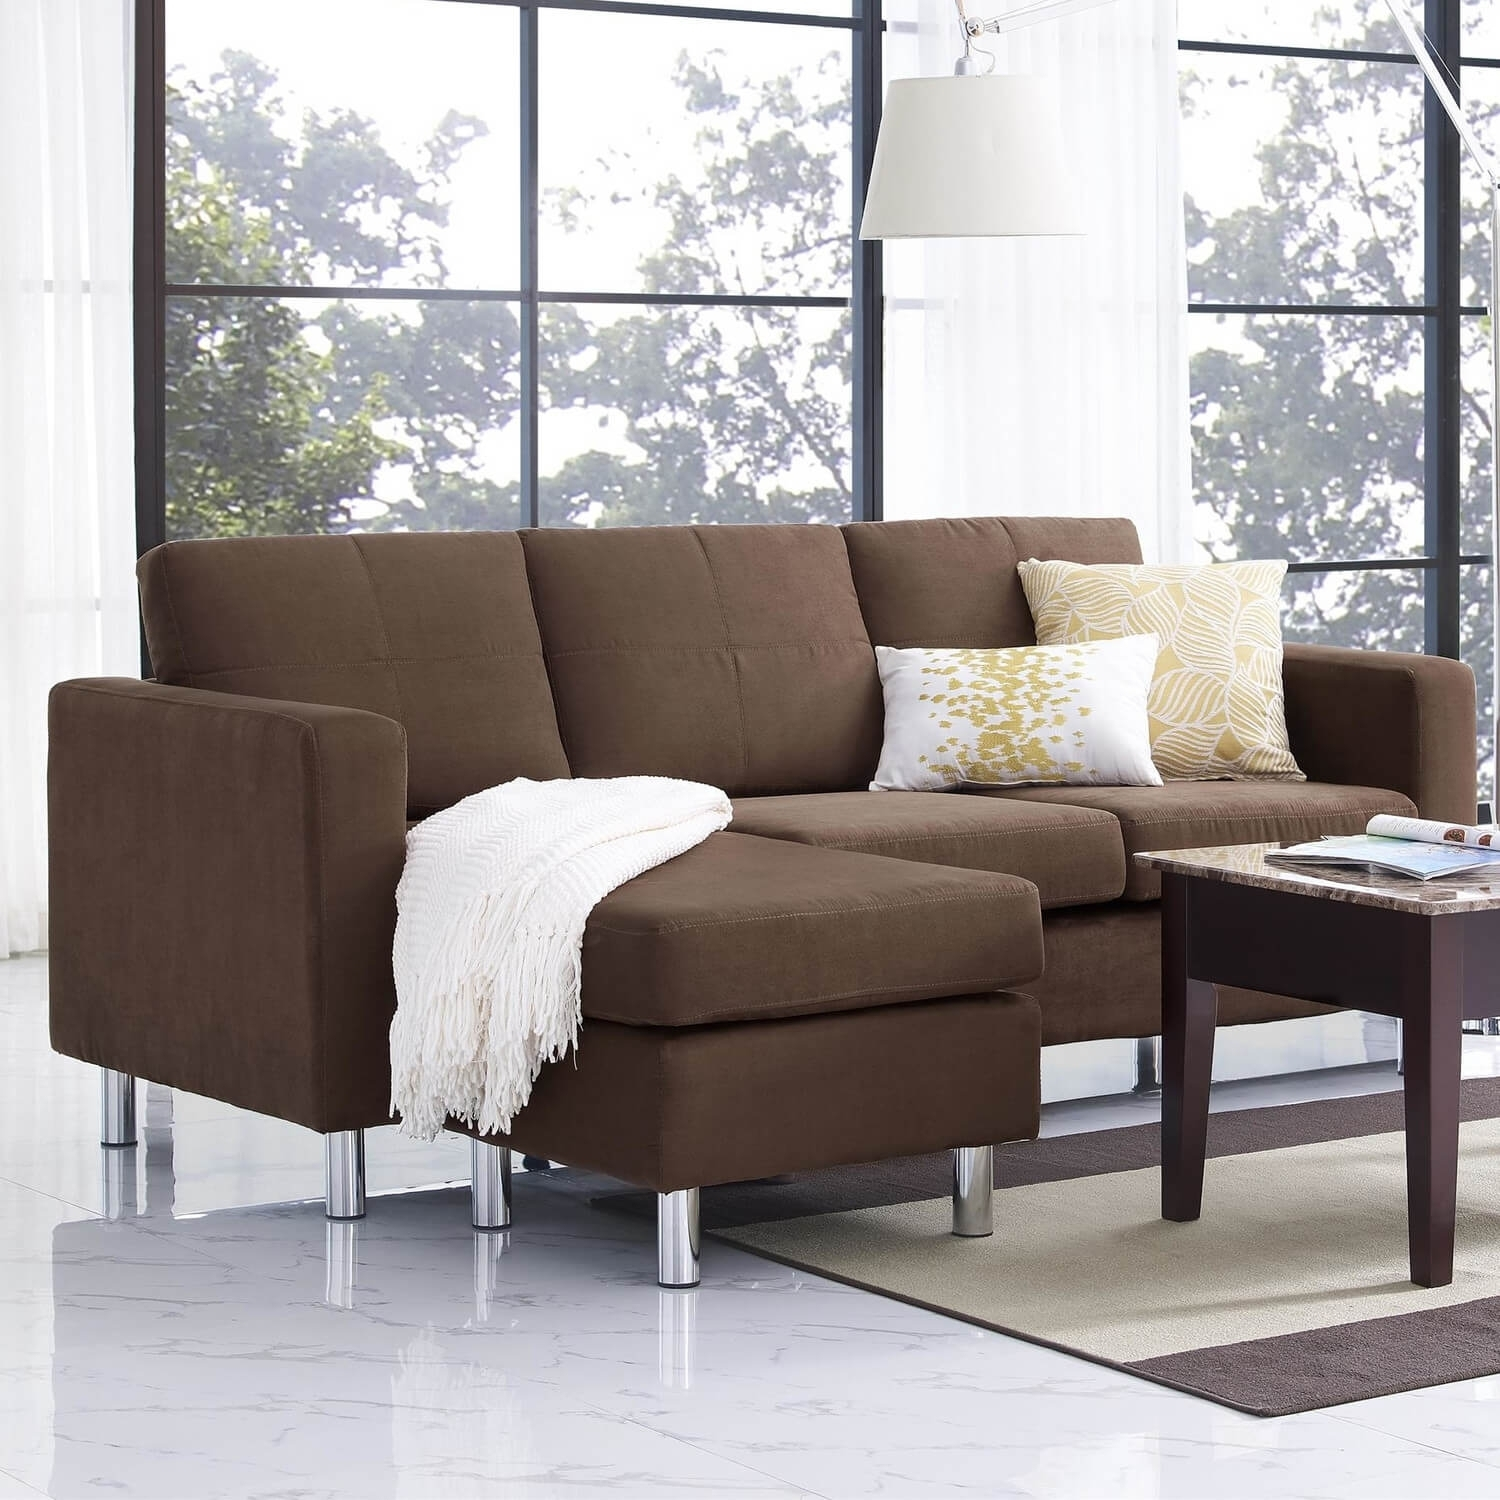 10 Top Sectional Sofas Under 1500 Sofa Ideas